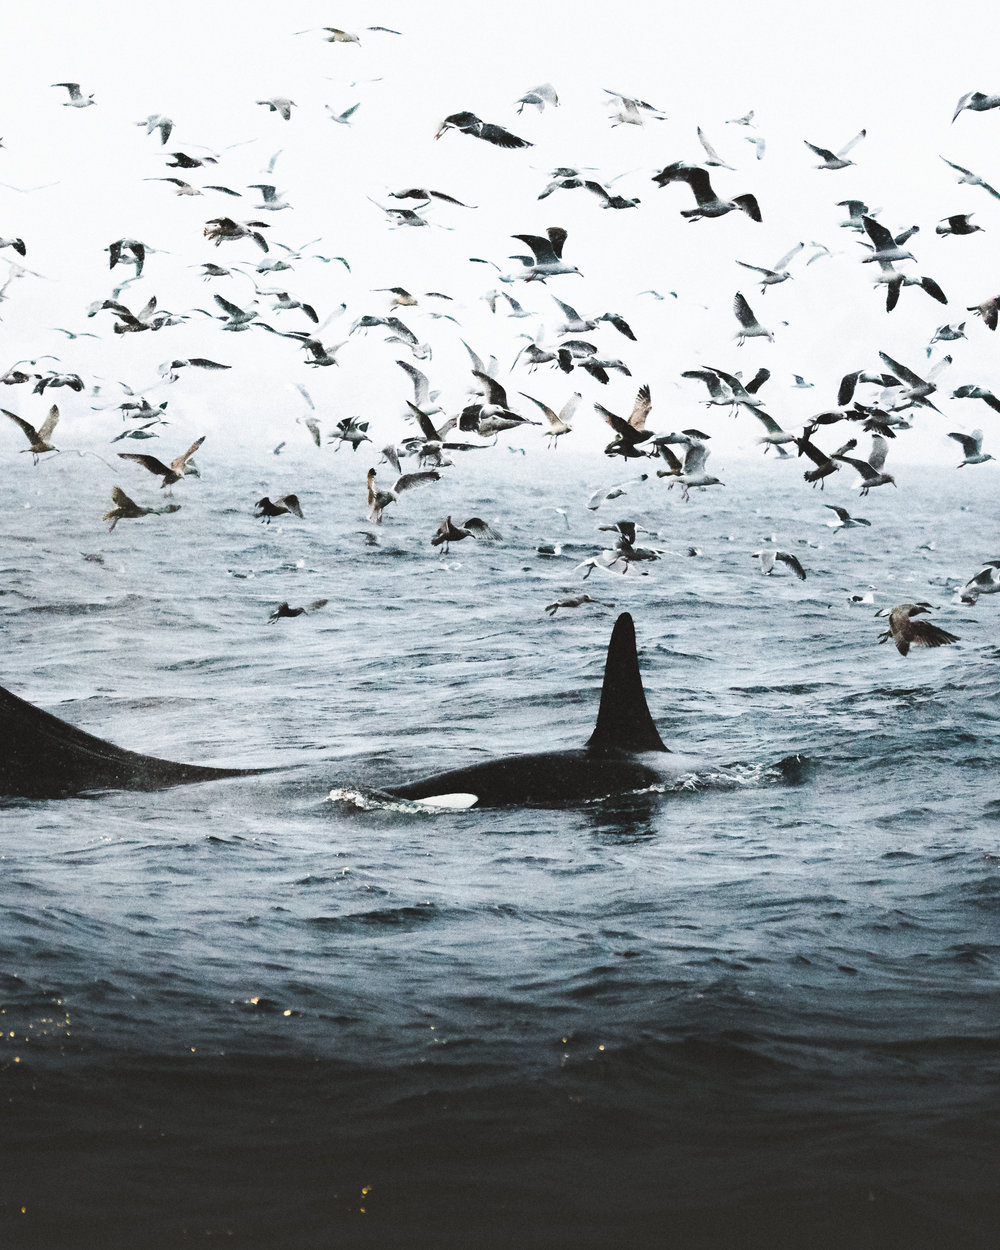 GRUNDAFJÖRÐUR - The small fishing village of Grundafjordur is surrounded by remarkable fjords, many of which hold the schools of herring which the Orcas come to feed on. Our best chance of seeing the orcas will be at the mouthes of these fjords.